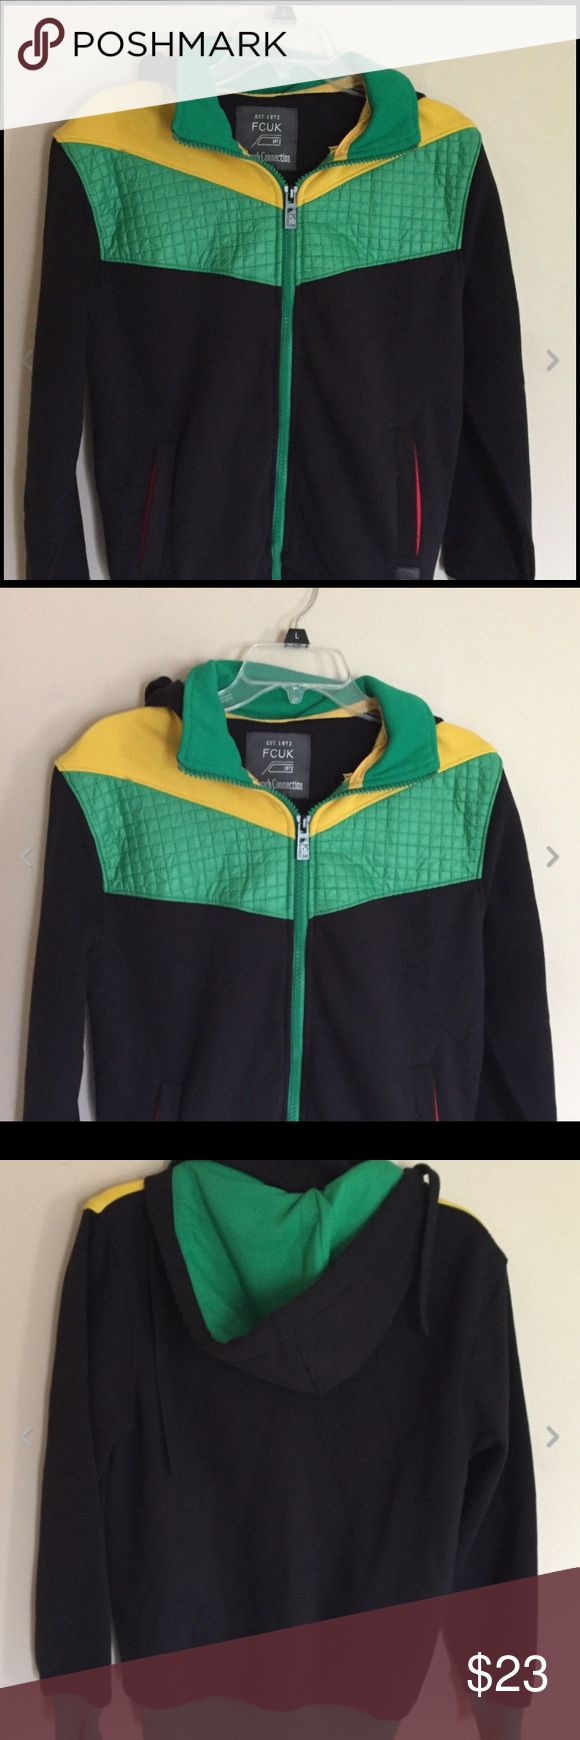 Mens French Connection Athletic Jacket M Very good condition. Measures about 20 inches across the chest, 26 inches in length and a 24 inch sleeve French Connection Jackets & Coats